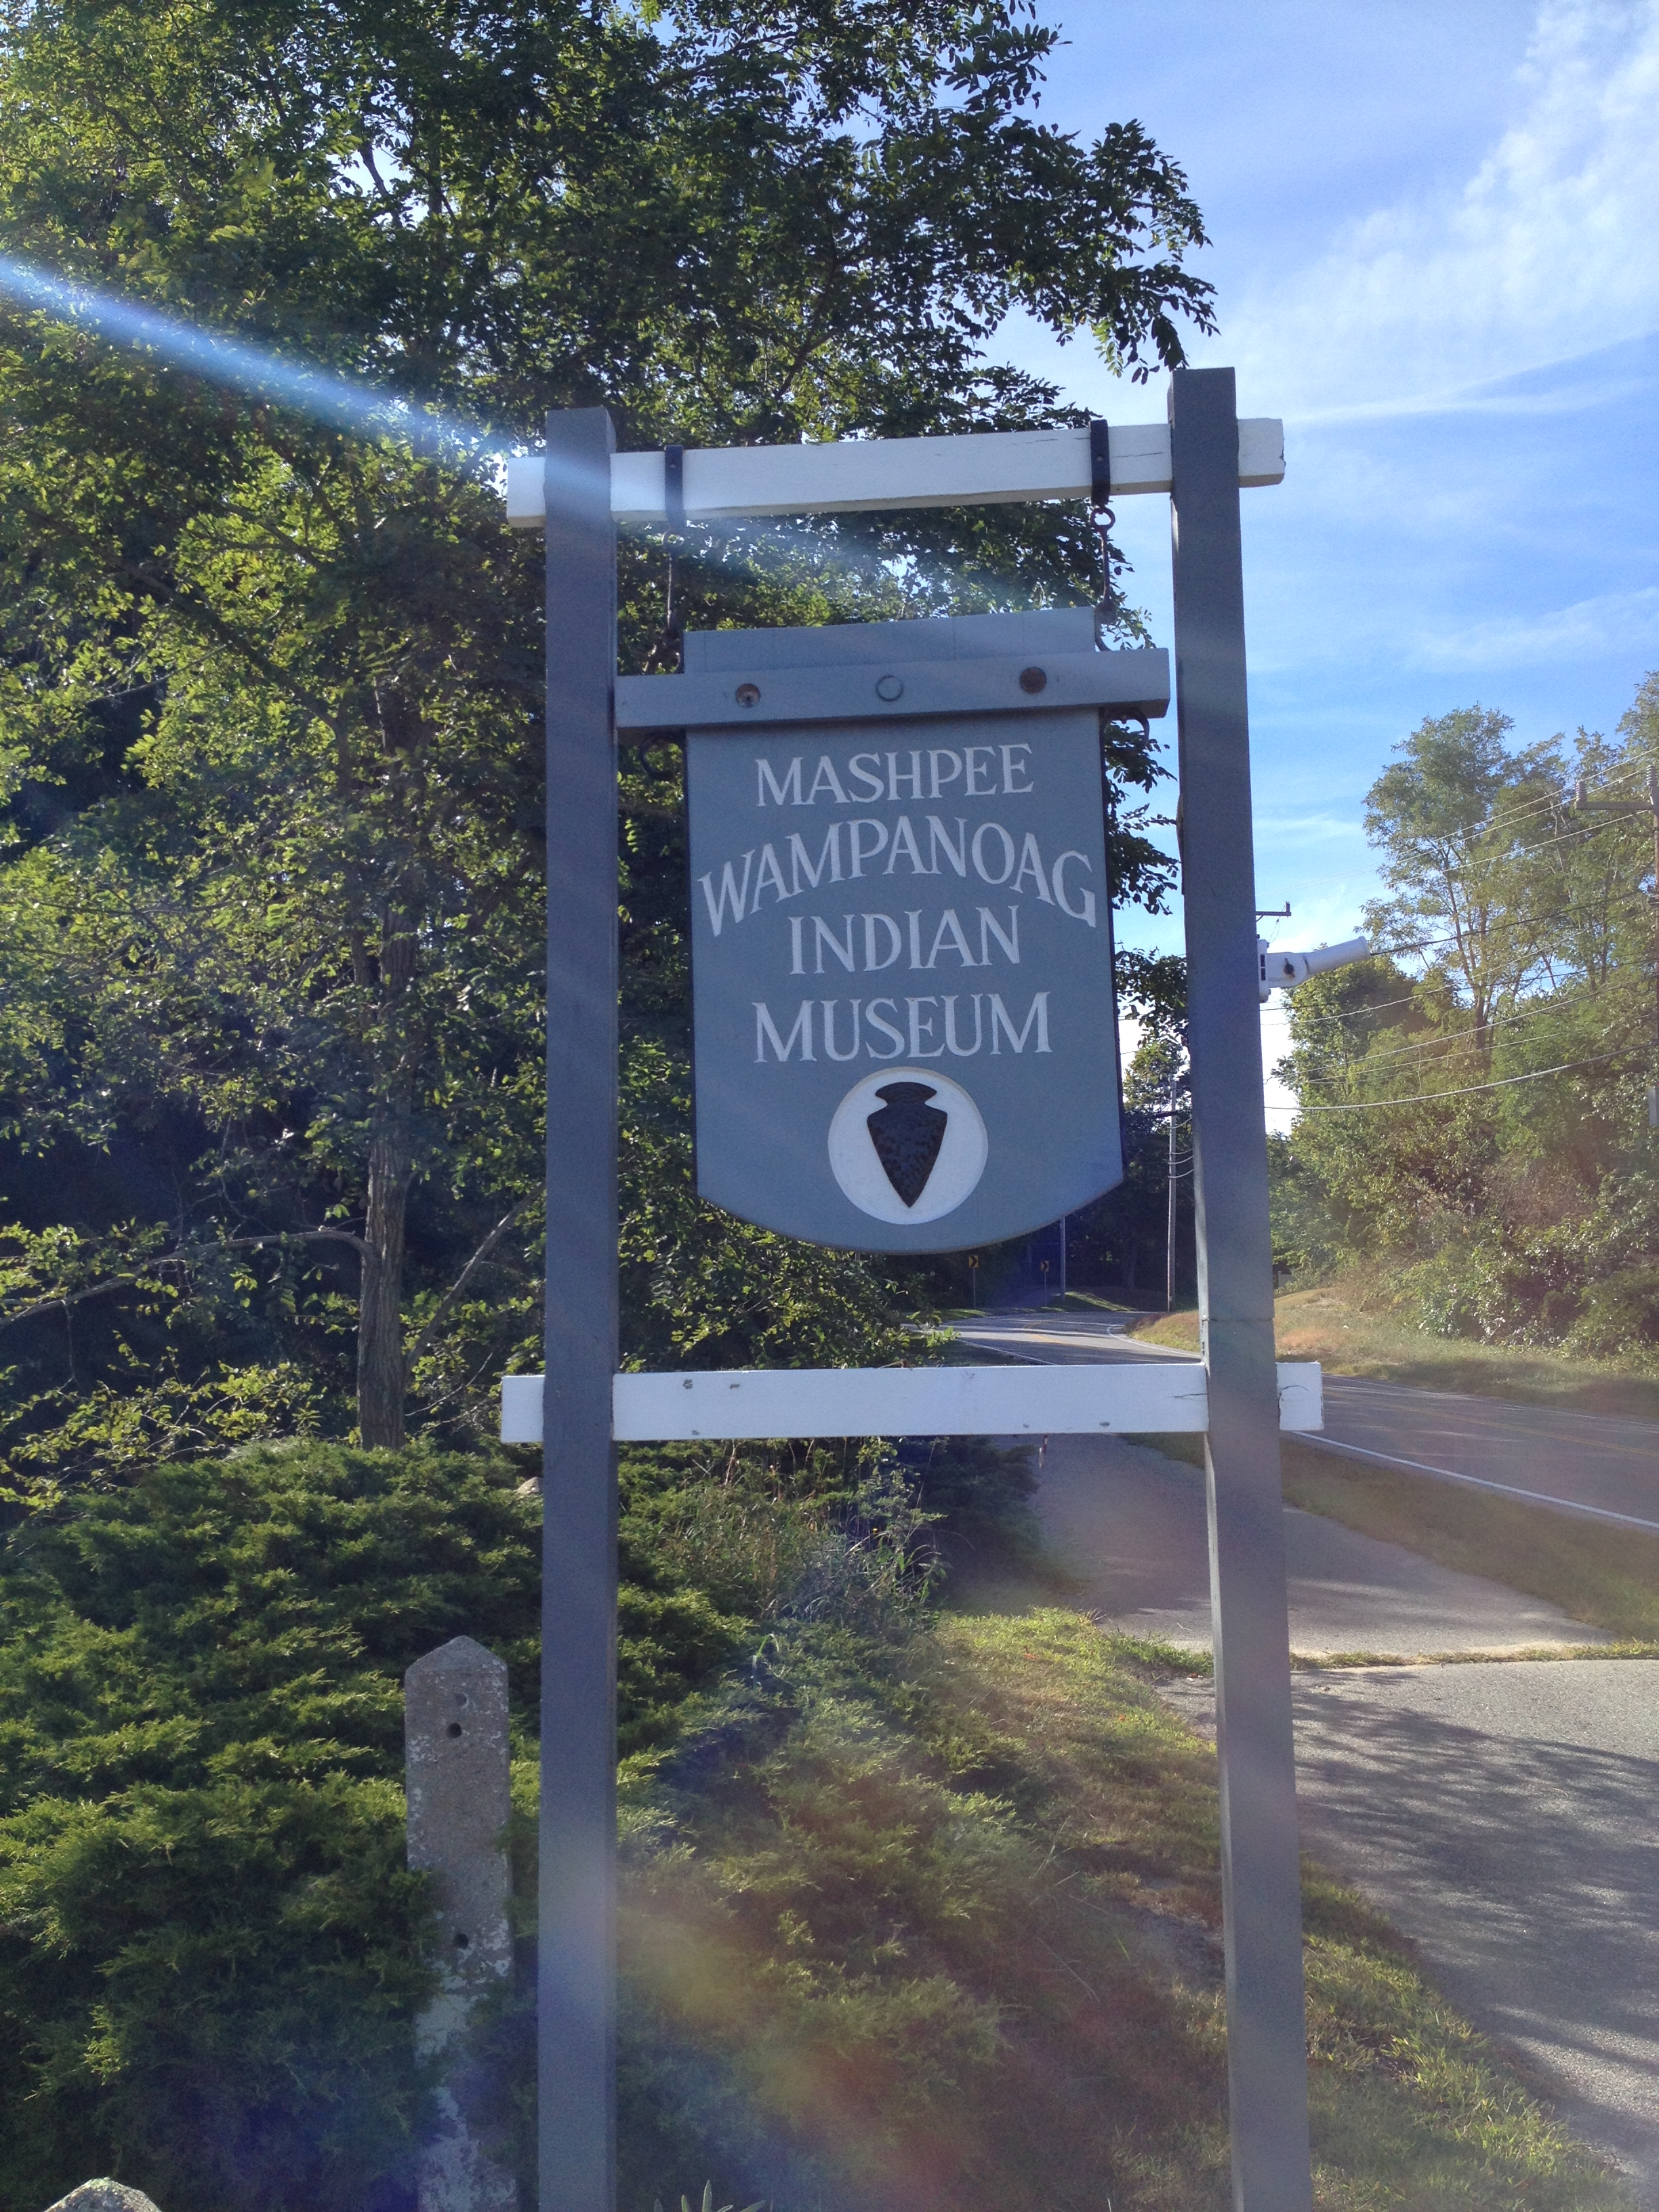 Mashpee Wampanoag Indian Museum